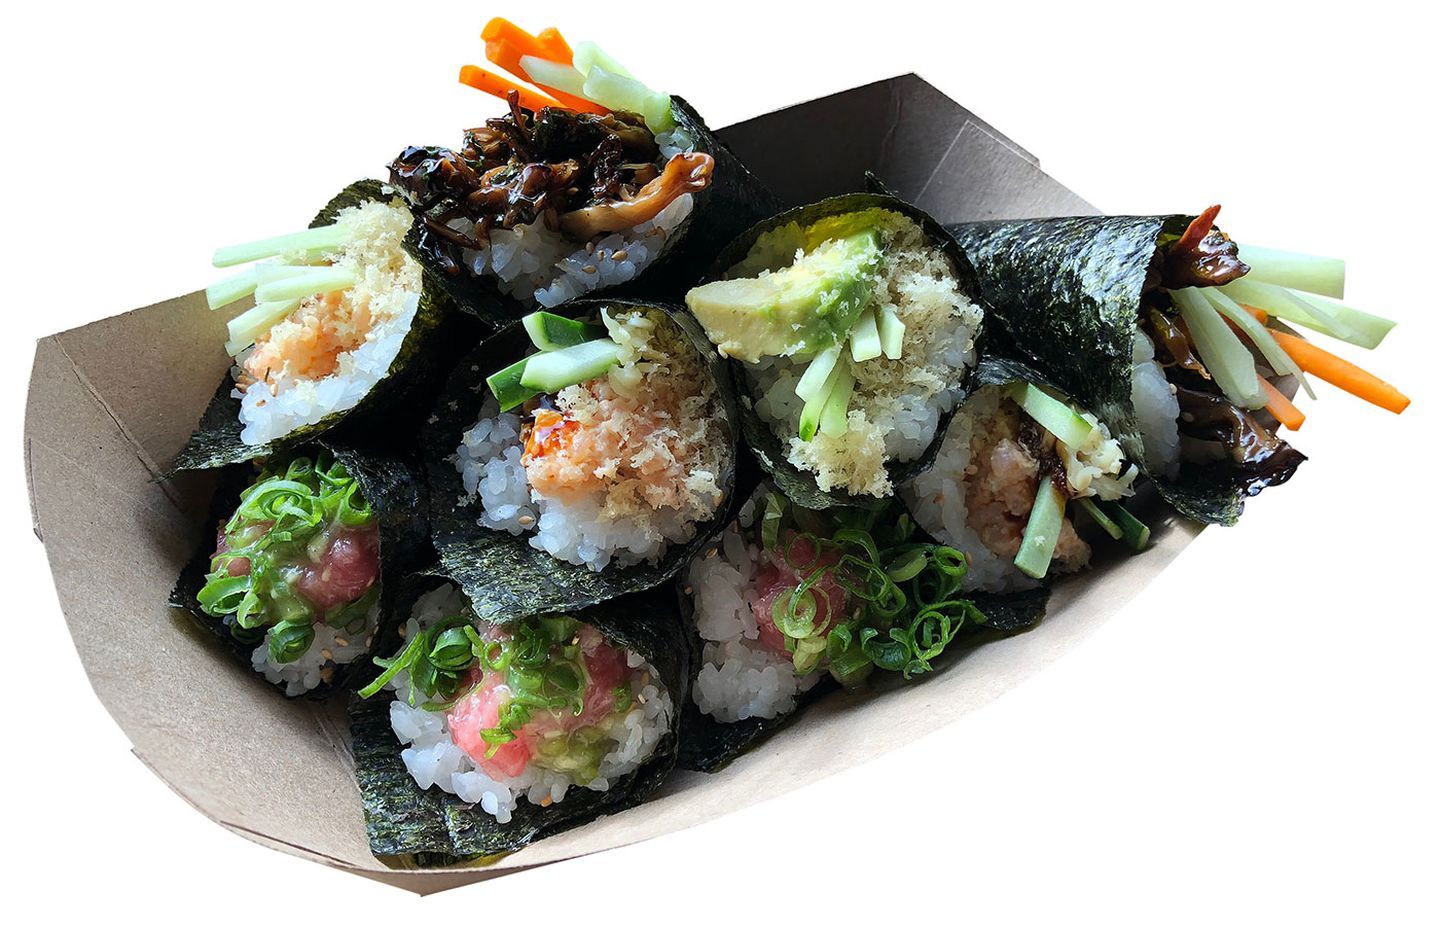 Crave-worthy hand rolls from Mr. Tuna.